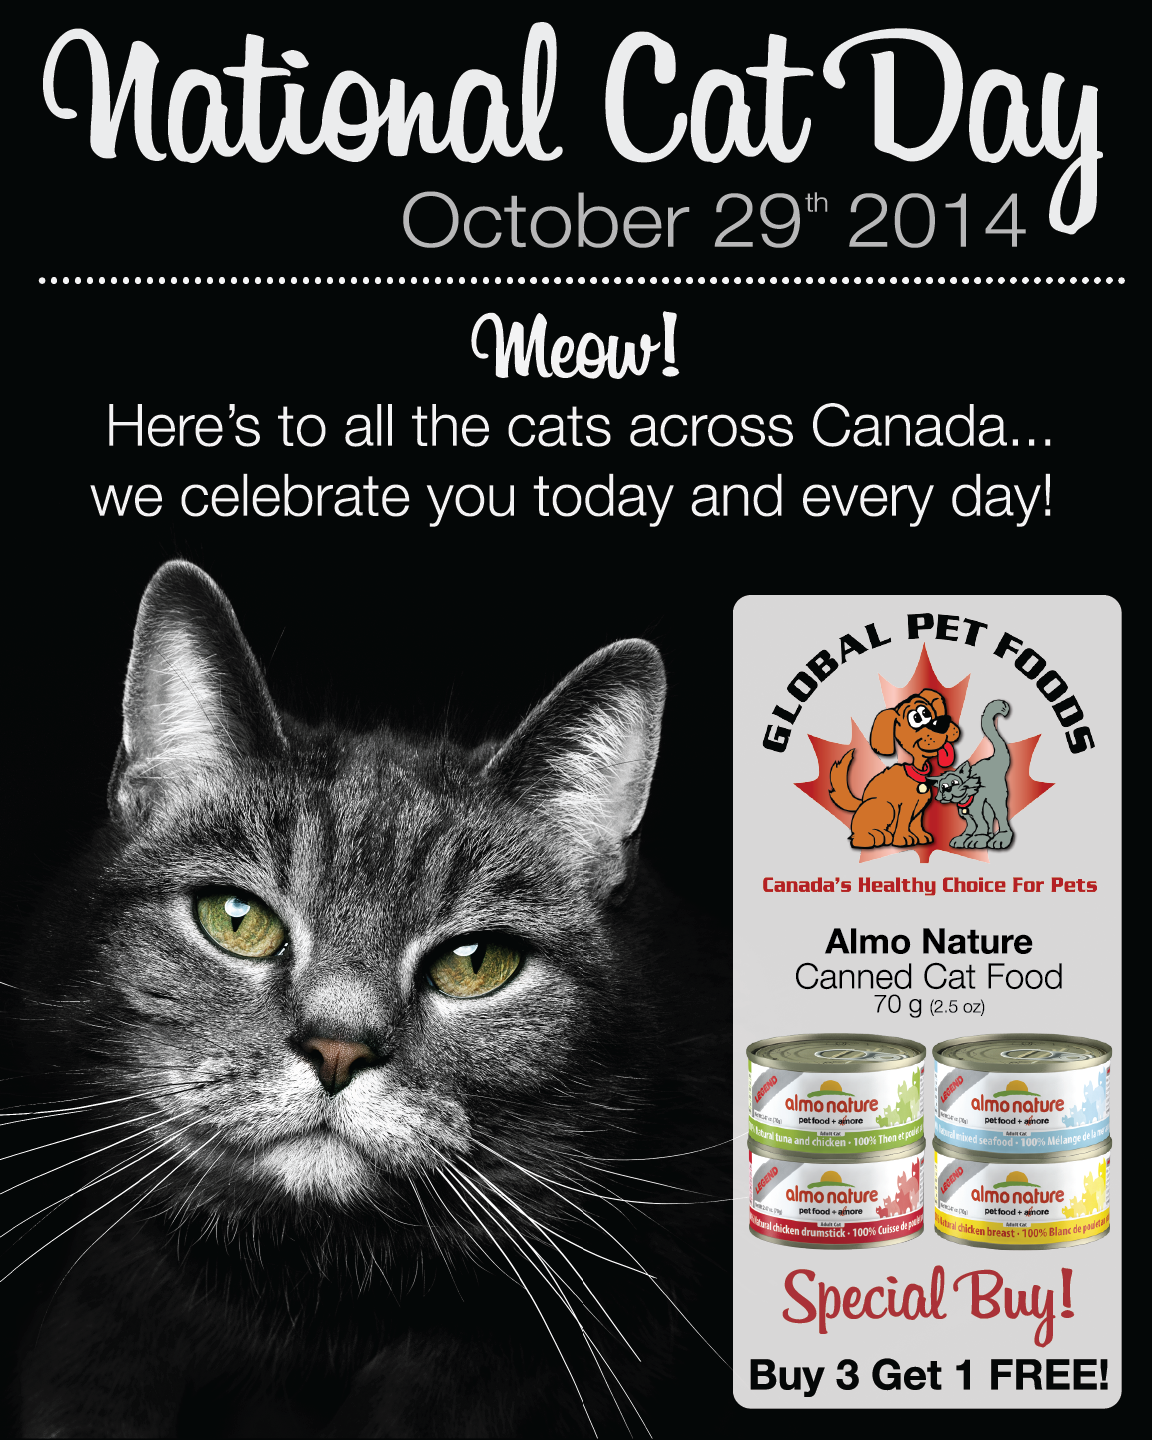 Did You Know That It S National Cat Day On Wednesday October 29th We Re Celebrating Cats Across Canada With This Special Offer Fro Food Animals Cat Day Pets